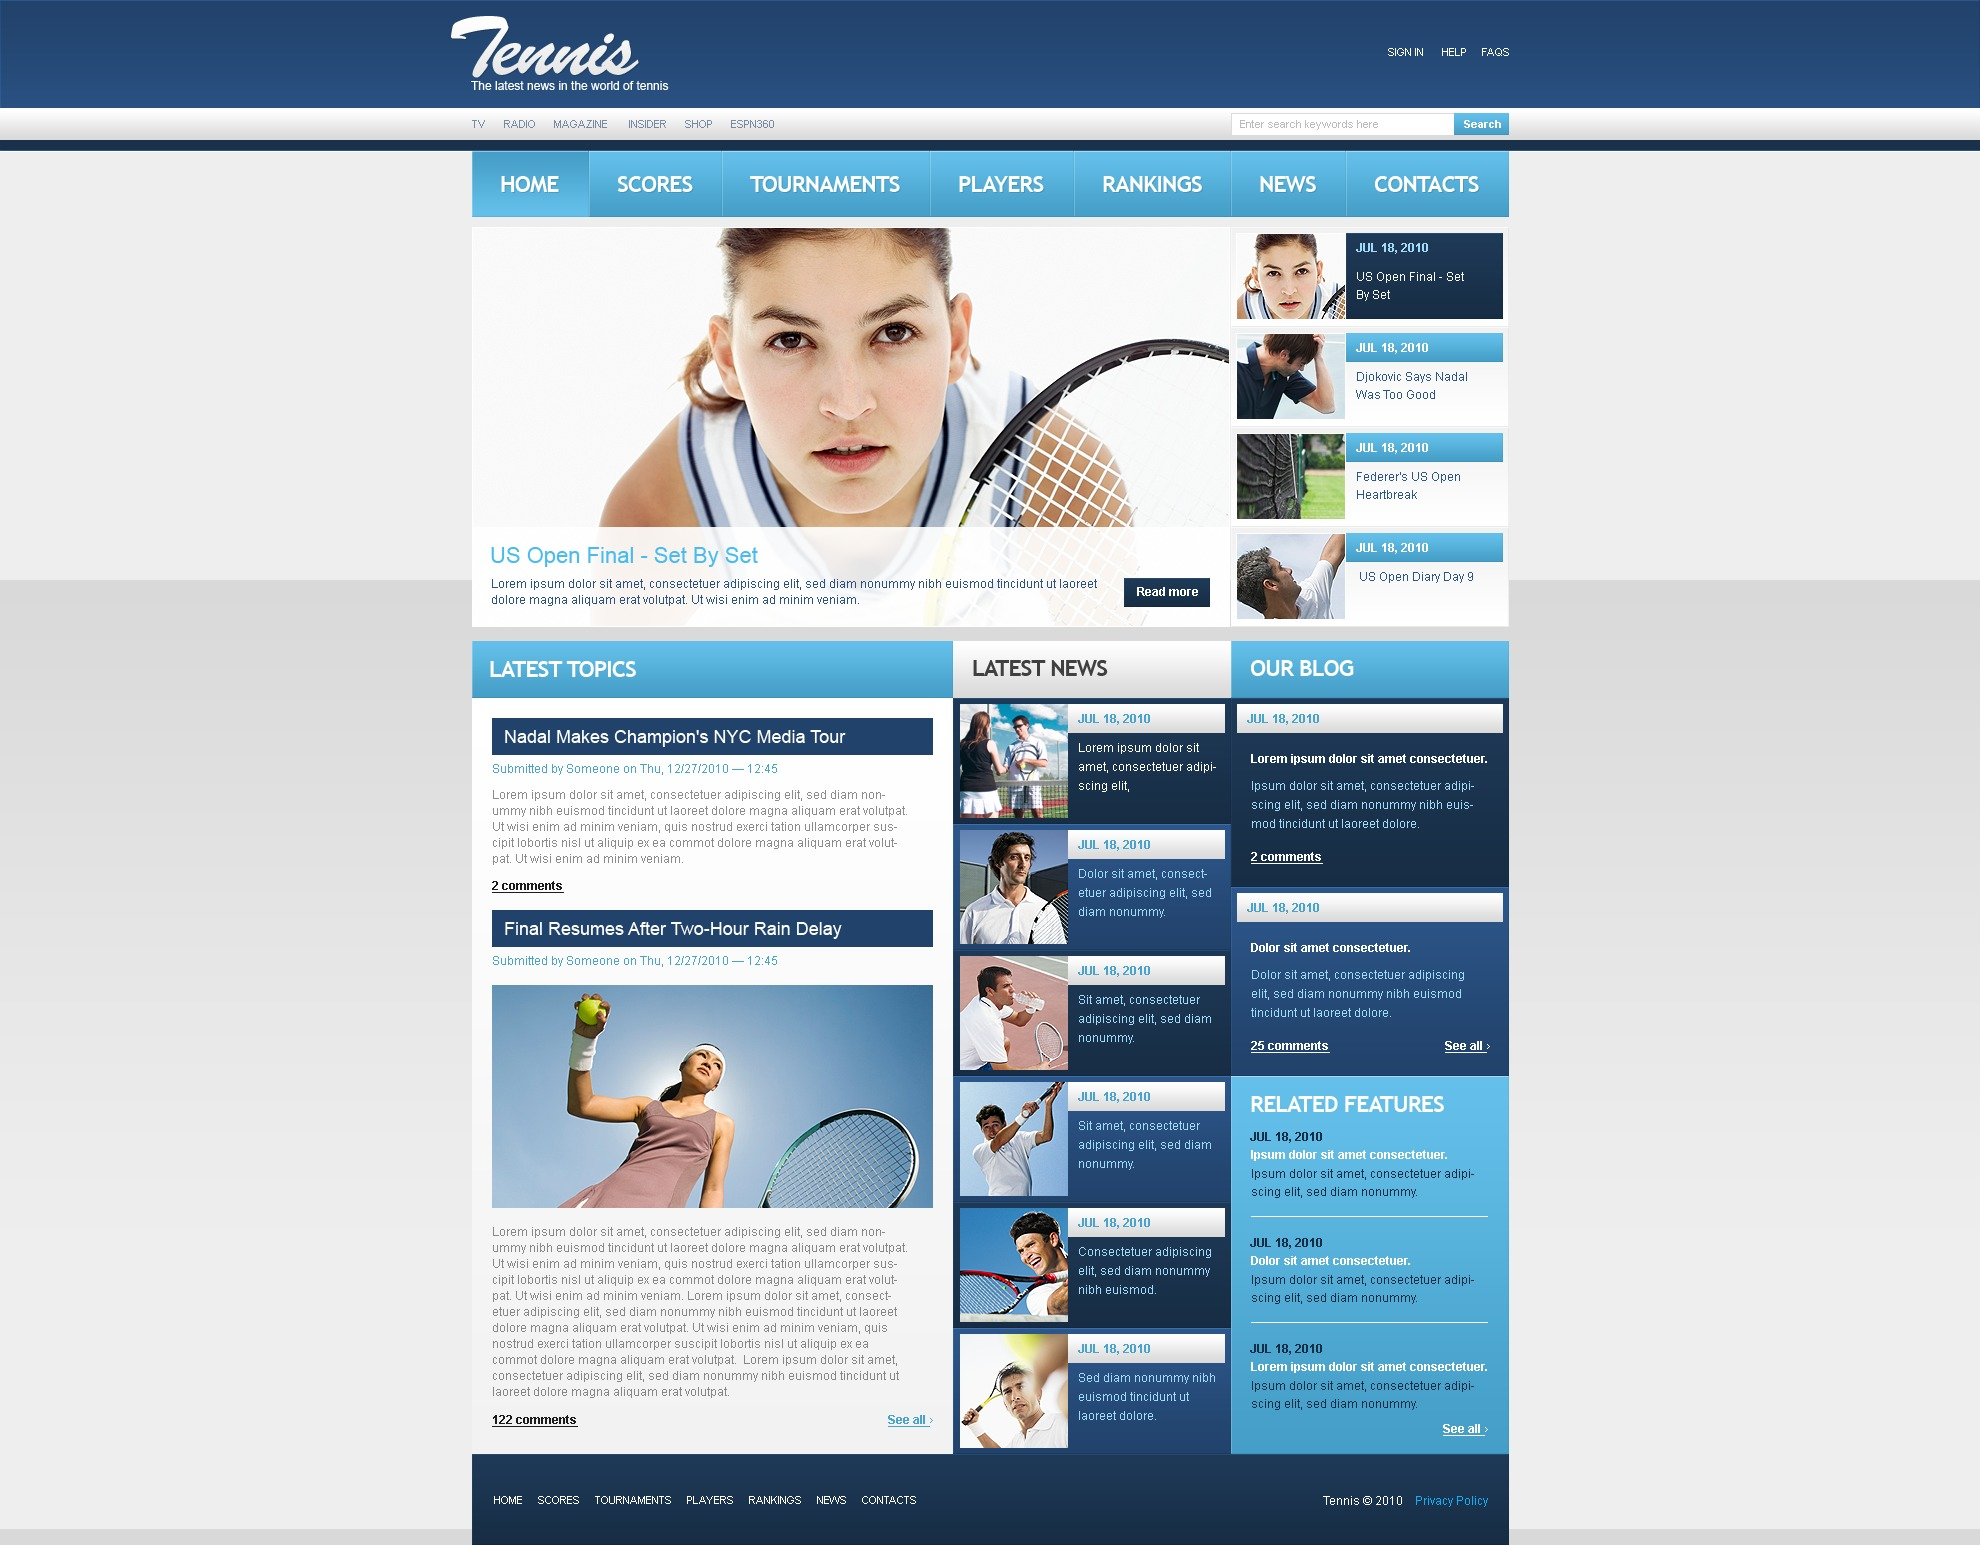 The Tennis Online News PSD Design 54447, one of the best PSD templates of its kind (sport, wide, jquery), also known as tennis online news PSD template, sport PSD template, championship PSD template, tournament PSD template, training PSD template, league PSD template, ball PSD template, schedule PSD template, statistic PSD template, media PSD template, ticket PSD template, interview PSD template, game PSD template, leadership PSD template, team PSD template, experience PSD template, instructor PSD template, battledore PSD template, shuttlecock PSD template, court PSD template, rocket PSD template, open PSD template, sery PSD template, Devis Cup Wimbledon equipment and related with tennis online news, sport, championship, tournament, training, league, ball, schedule, statistic, media, ticket, interview, game, leadership, team, experience, instructor, battledore, shuttlecock, court, rocket, open, sery, Devis Cup Wimbledon equipment, etc.